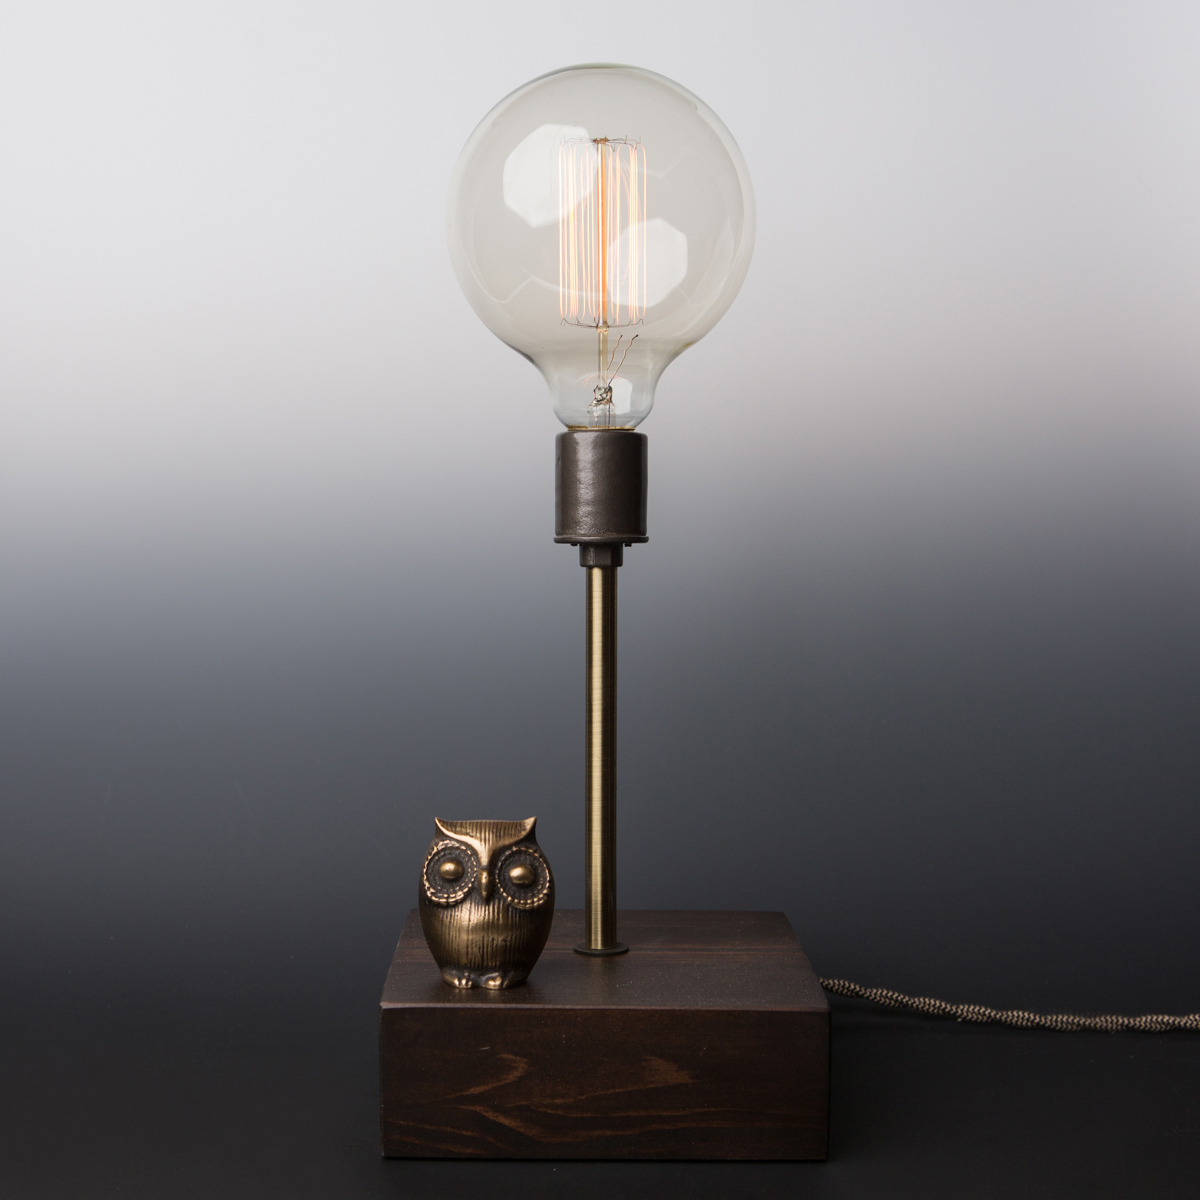 Vintage owl lamps - Mr Owl Touch Sensor Lamp